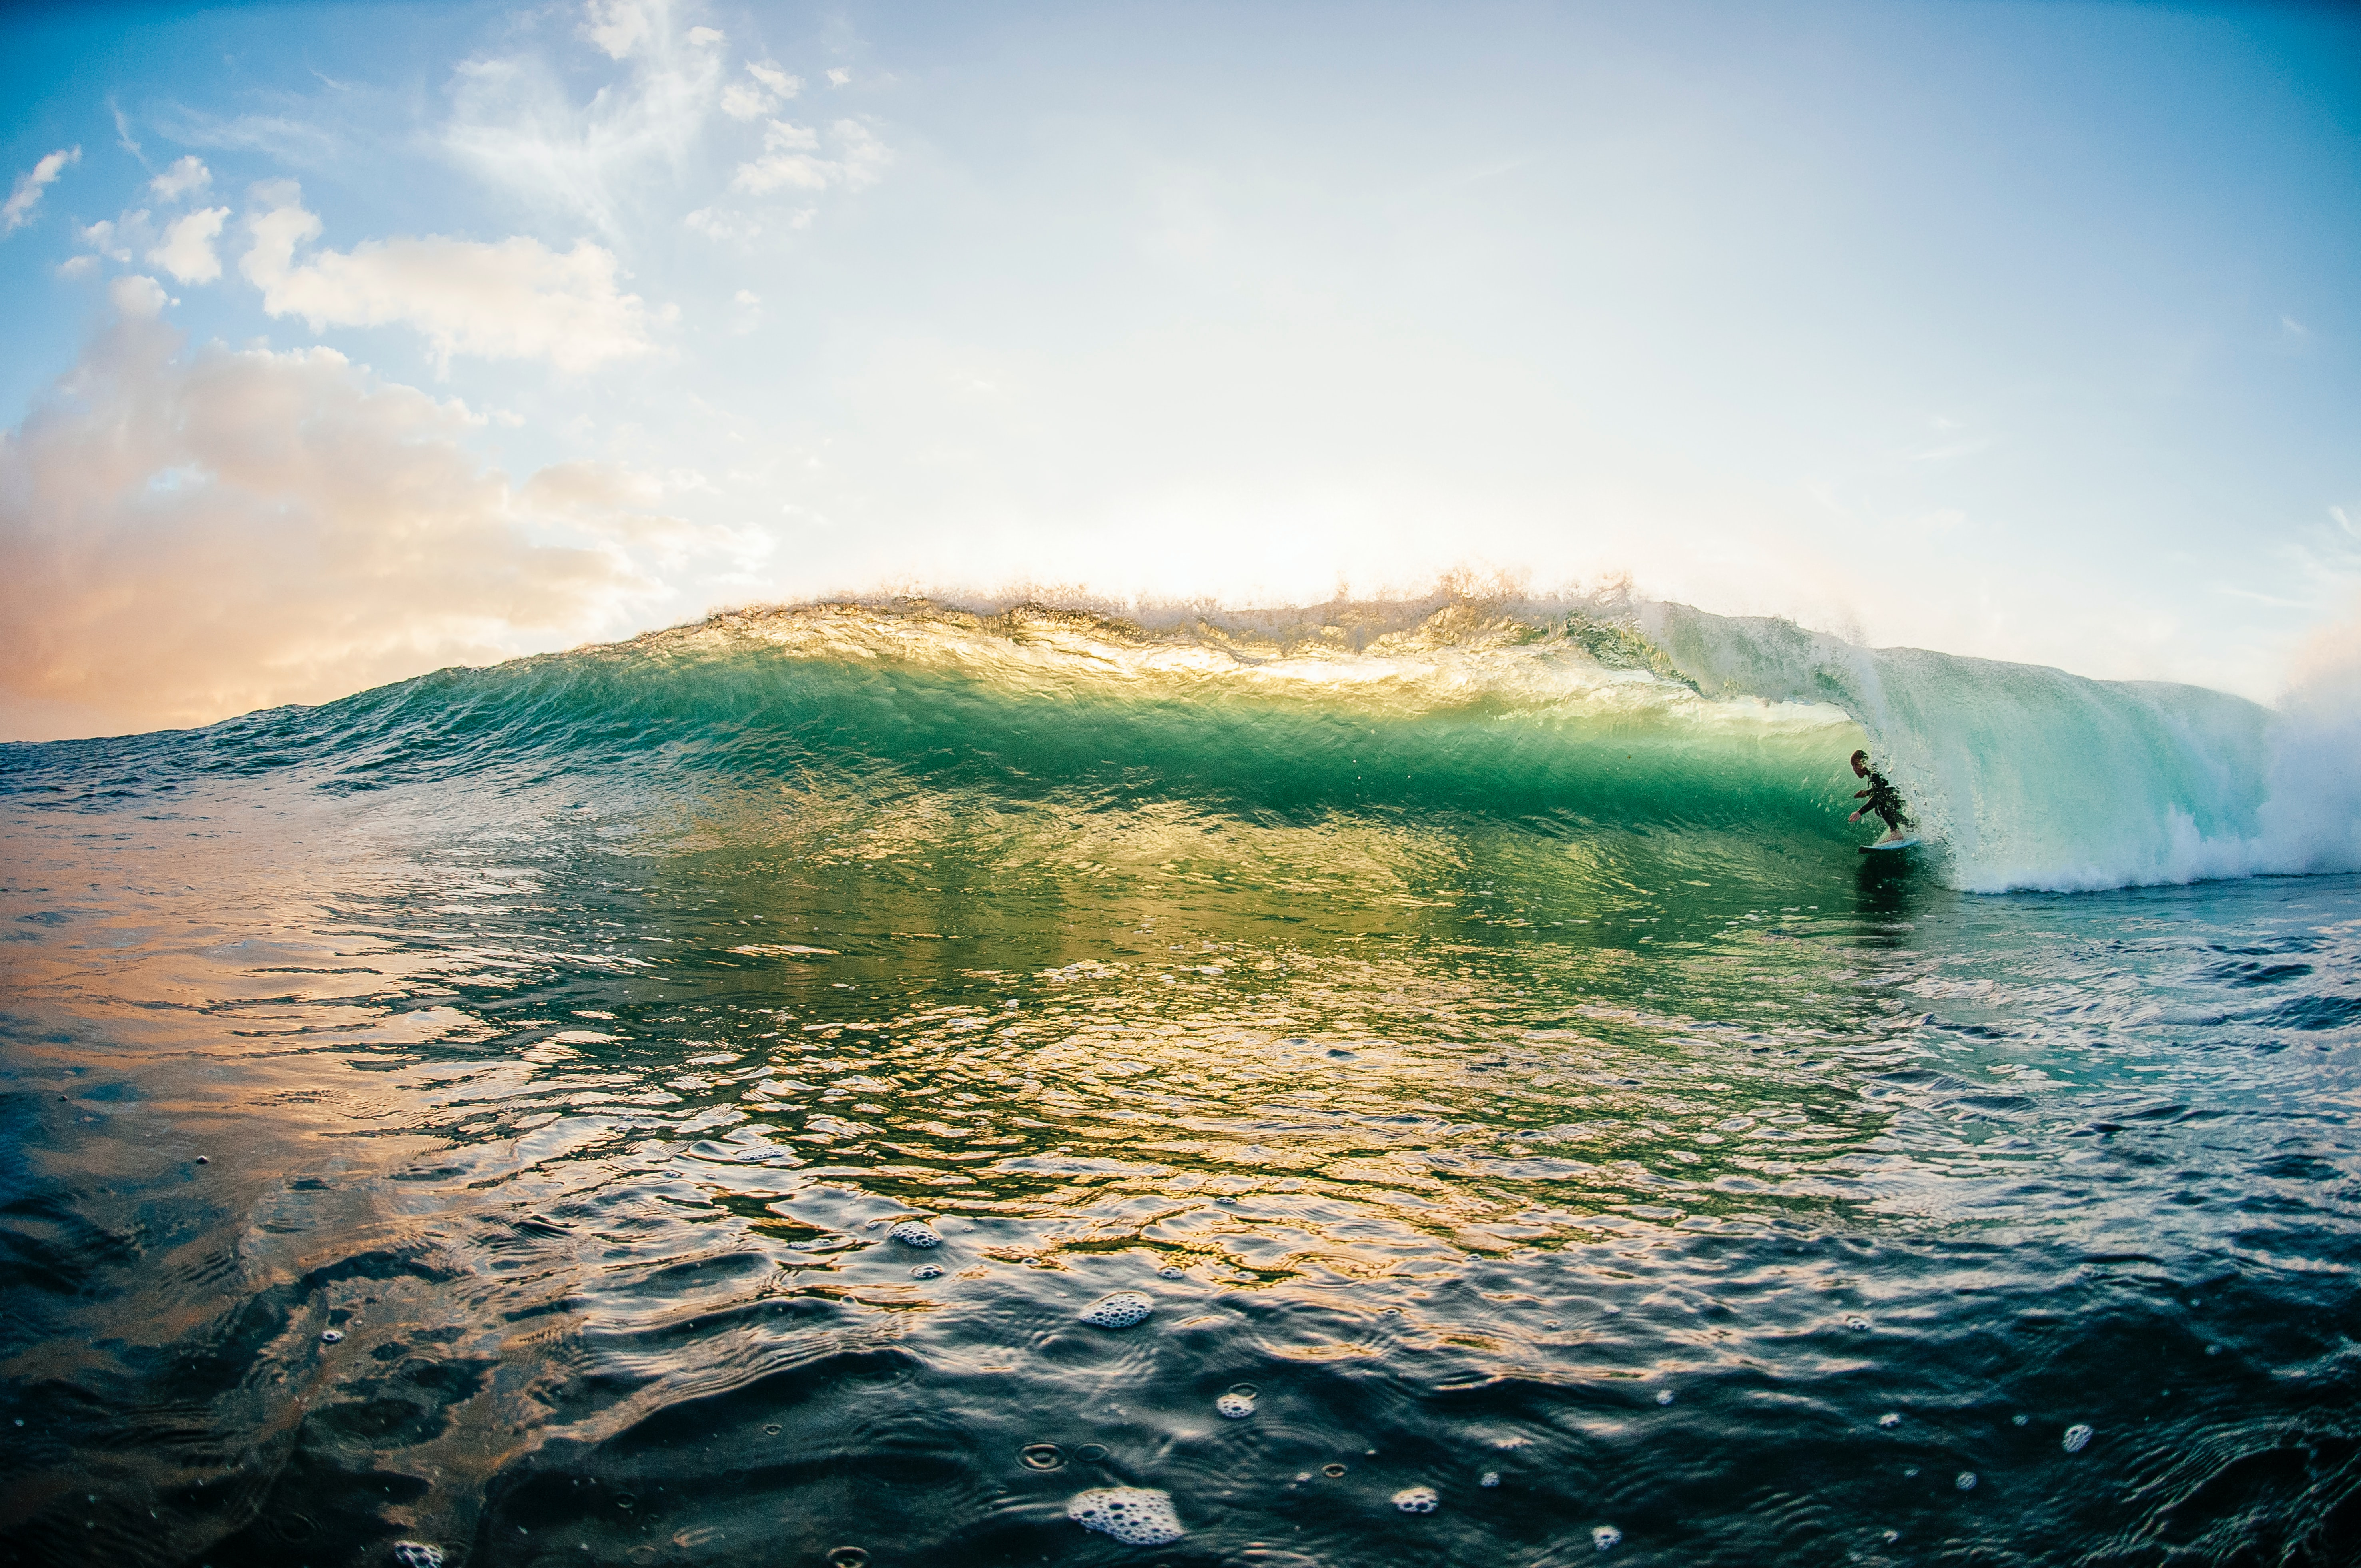 151594 download wallpaper Miscellanea, Miscellaneous, Surfer, Serfing, Wave, Ocean, Sky screensavers and pictures for free